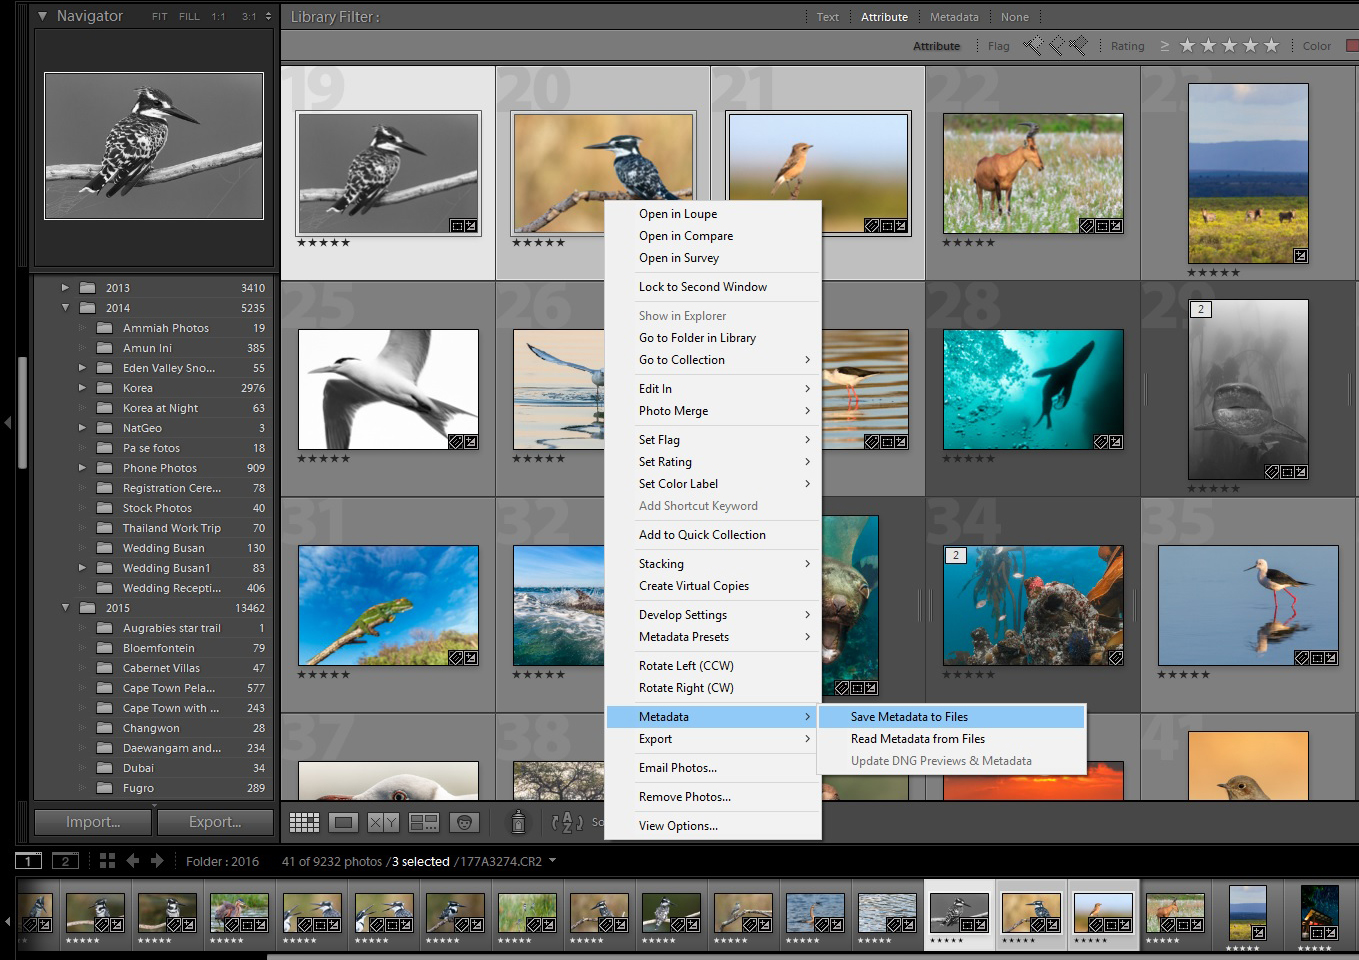 Manually save metadata to file in Adobe Lightroom